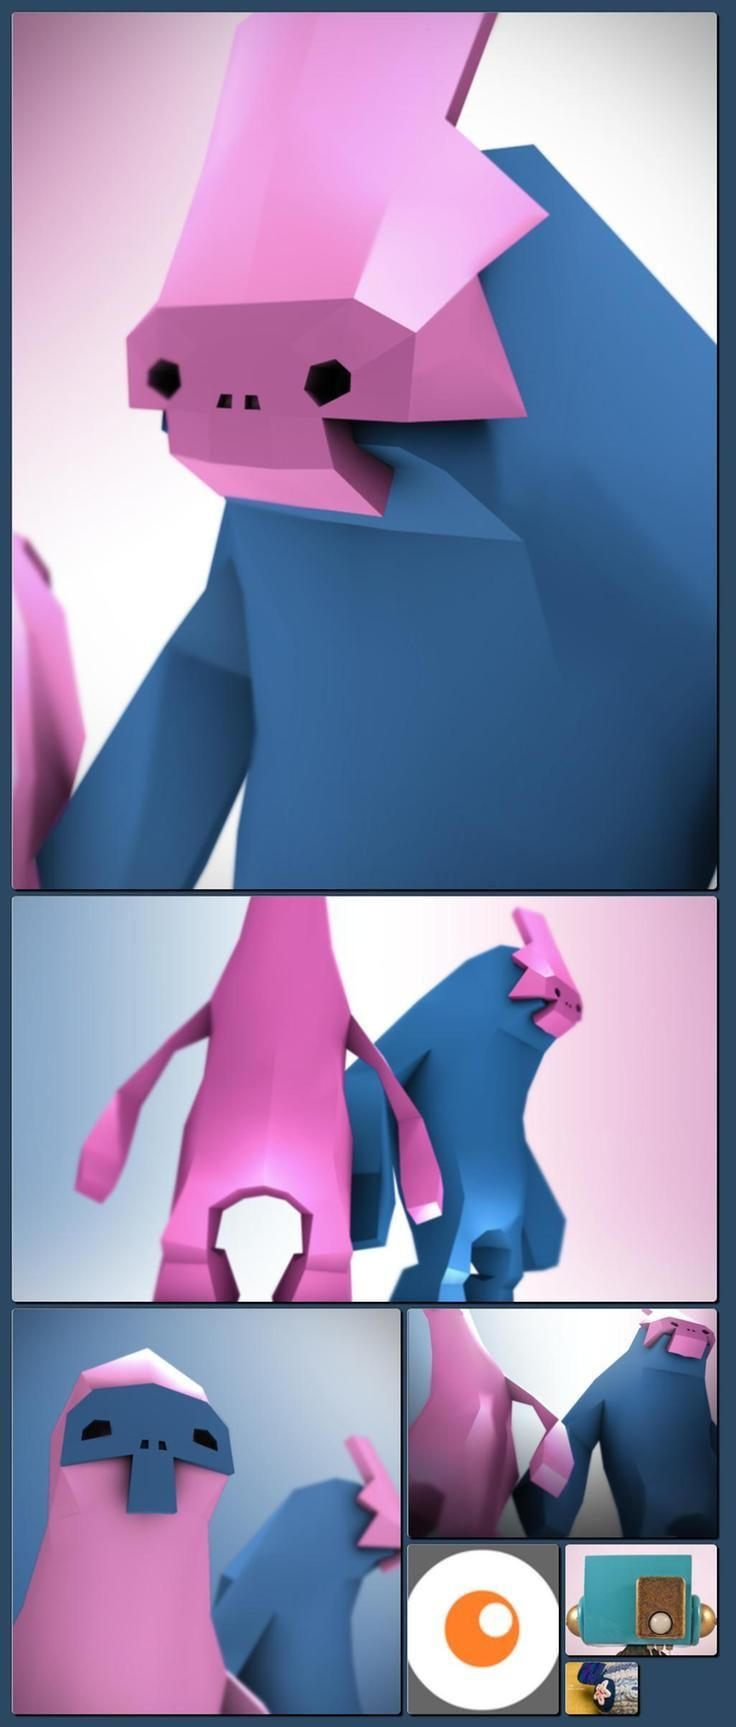 Example of minimal face on a low poly character